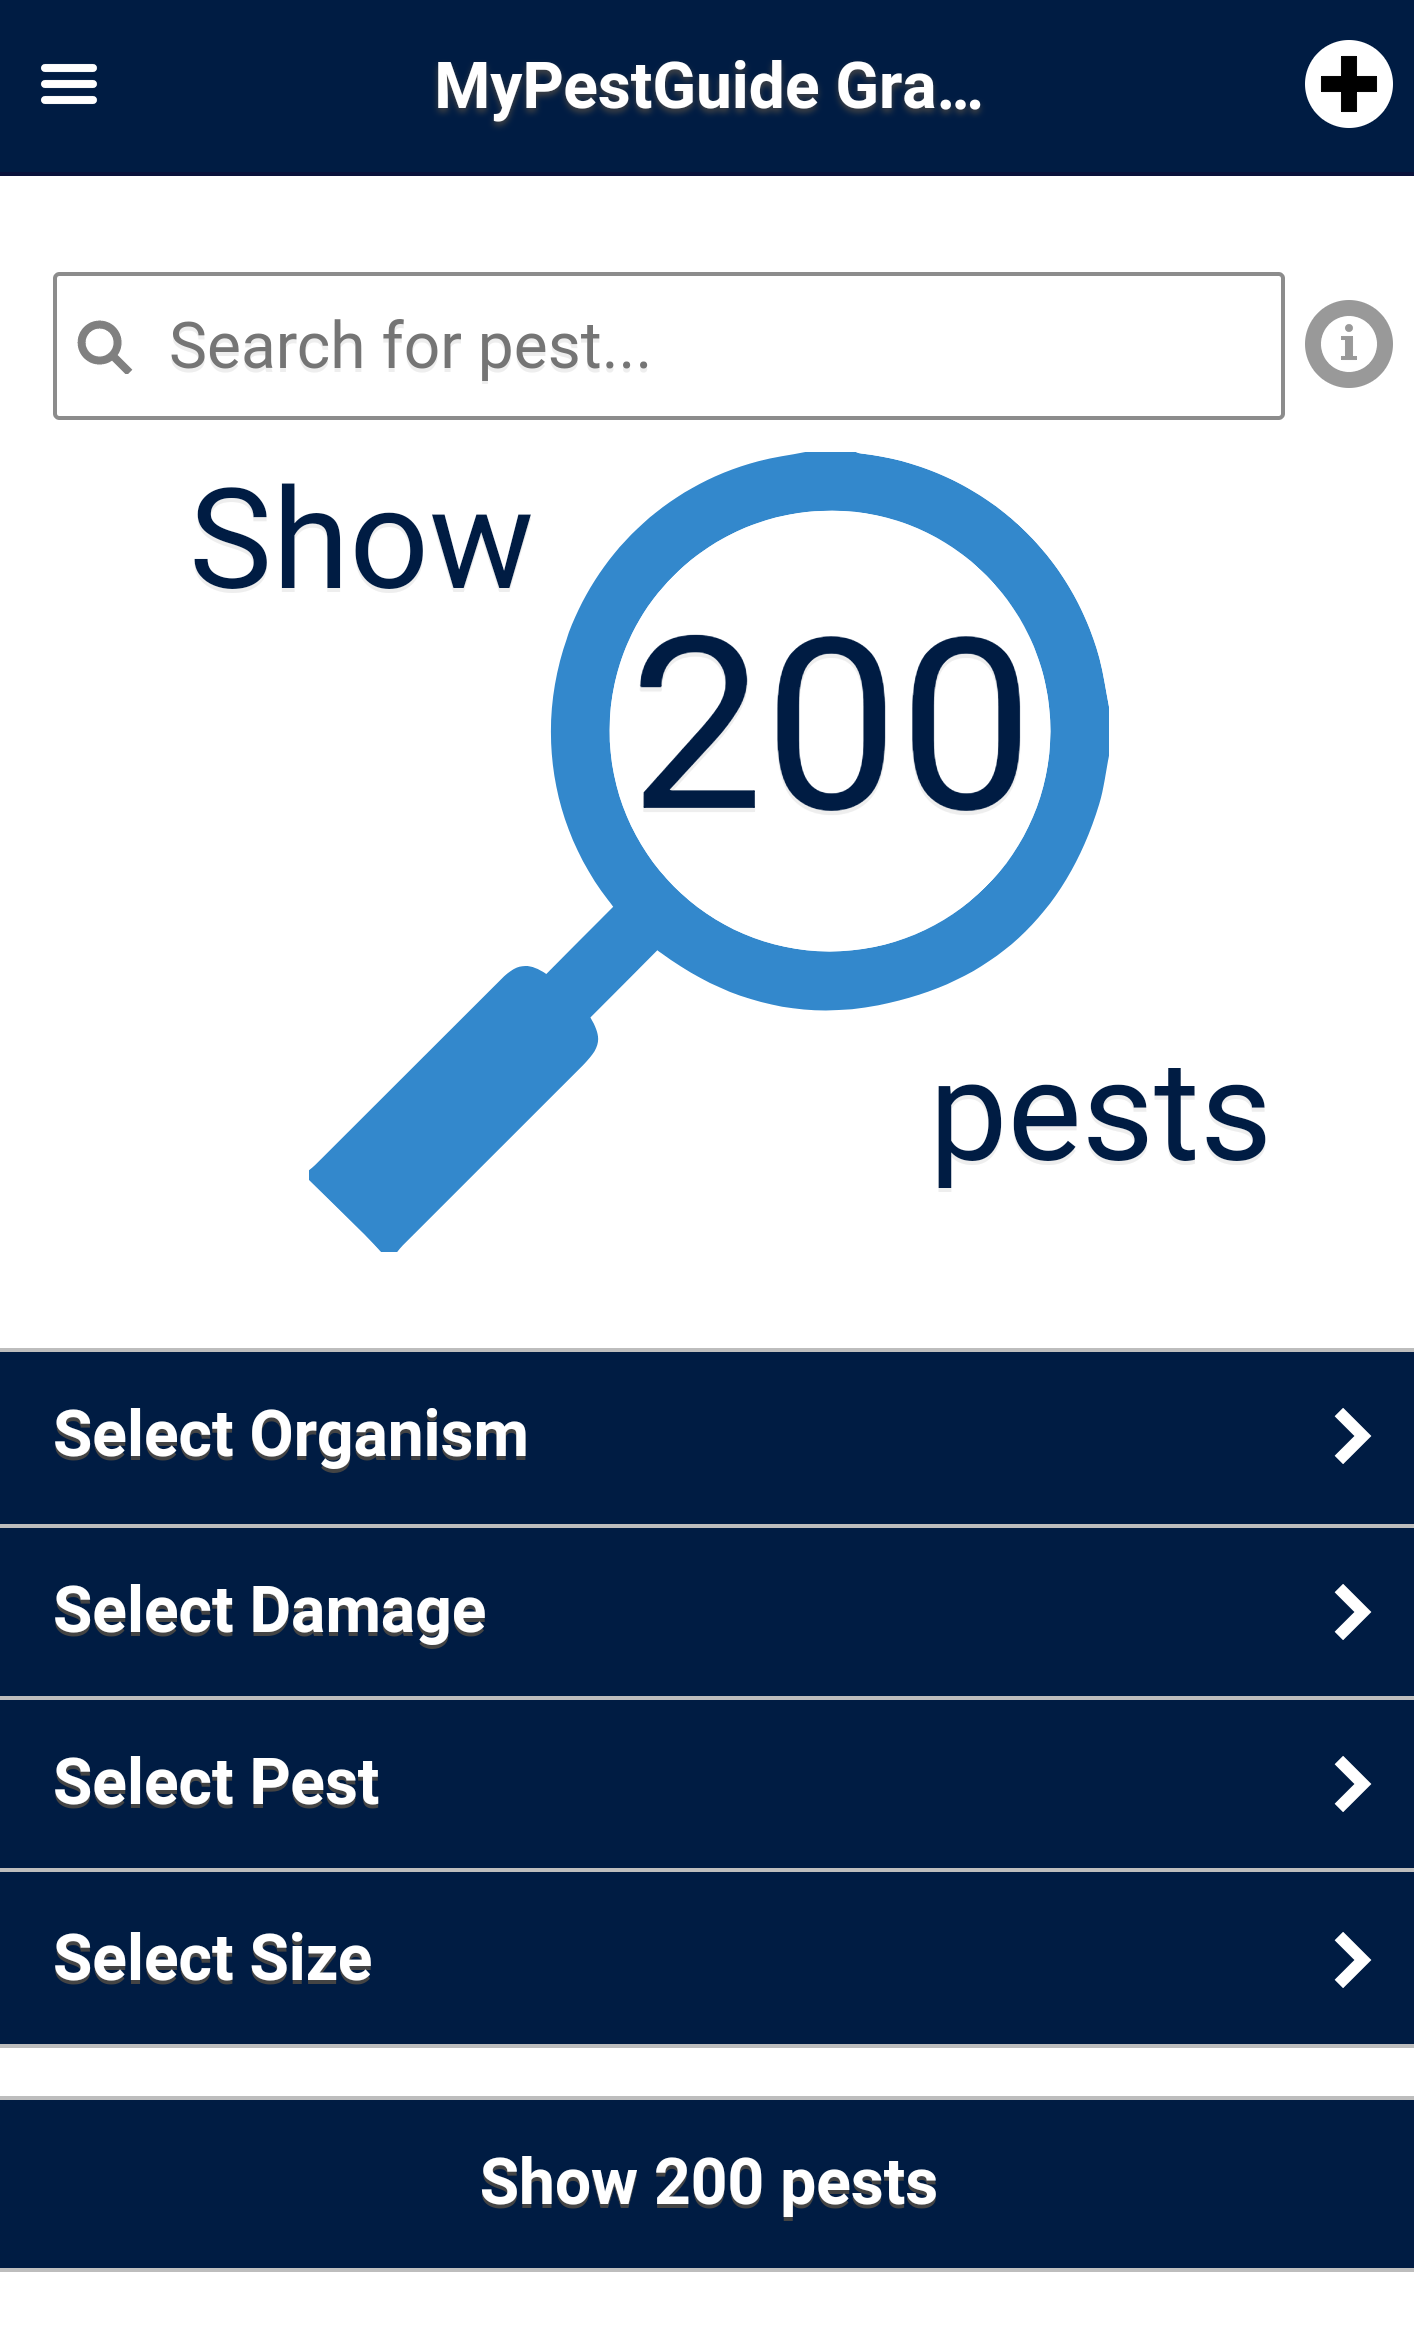 Search from 156 pests by damage or pest